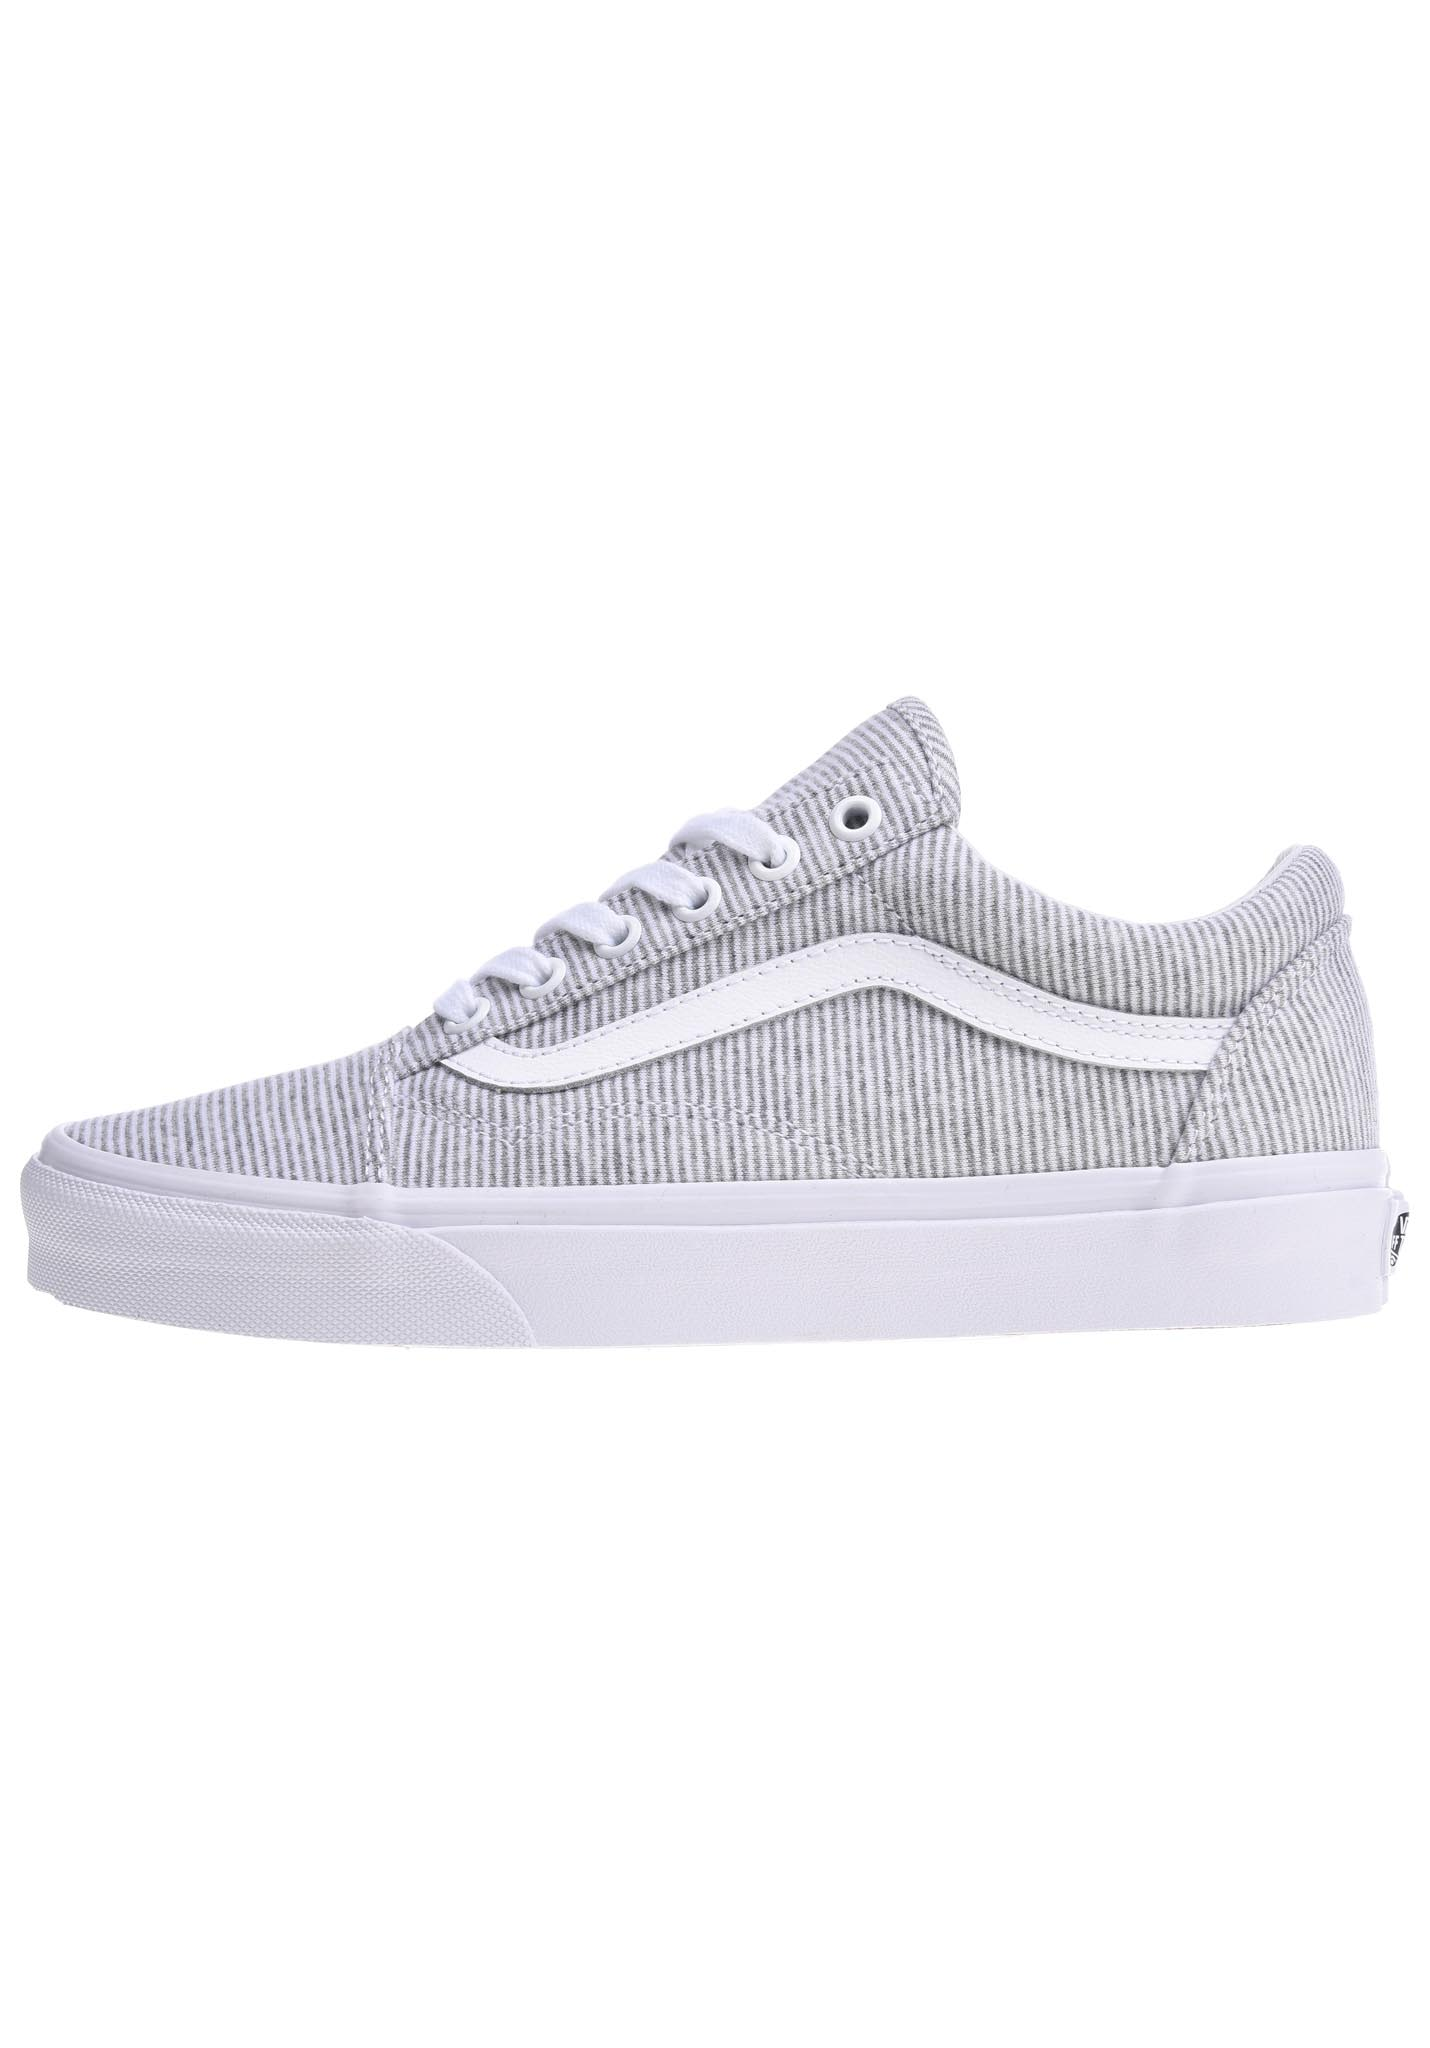 e32720b2098ced Vans Old Skool - Sneakers for Women - Grey - Planet Sports